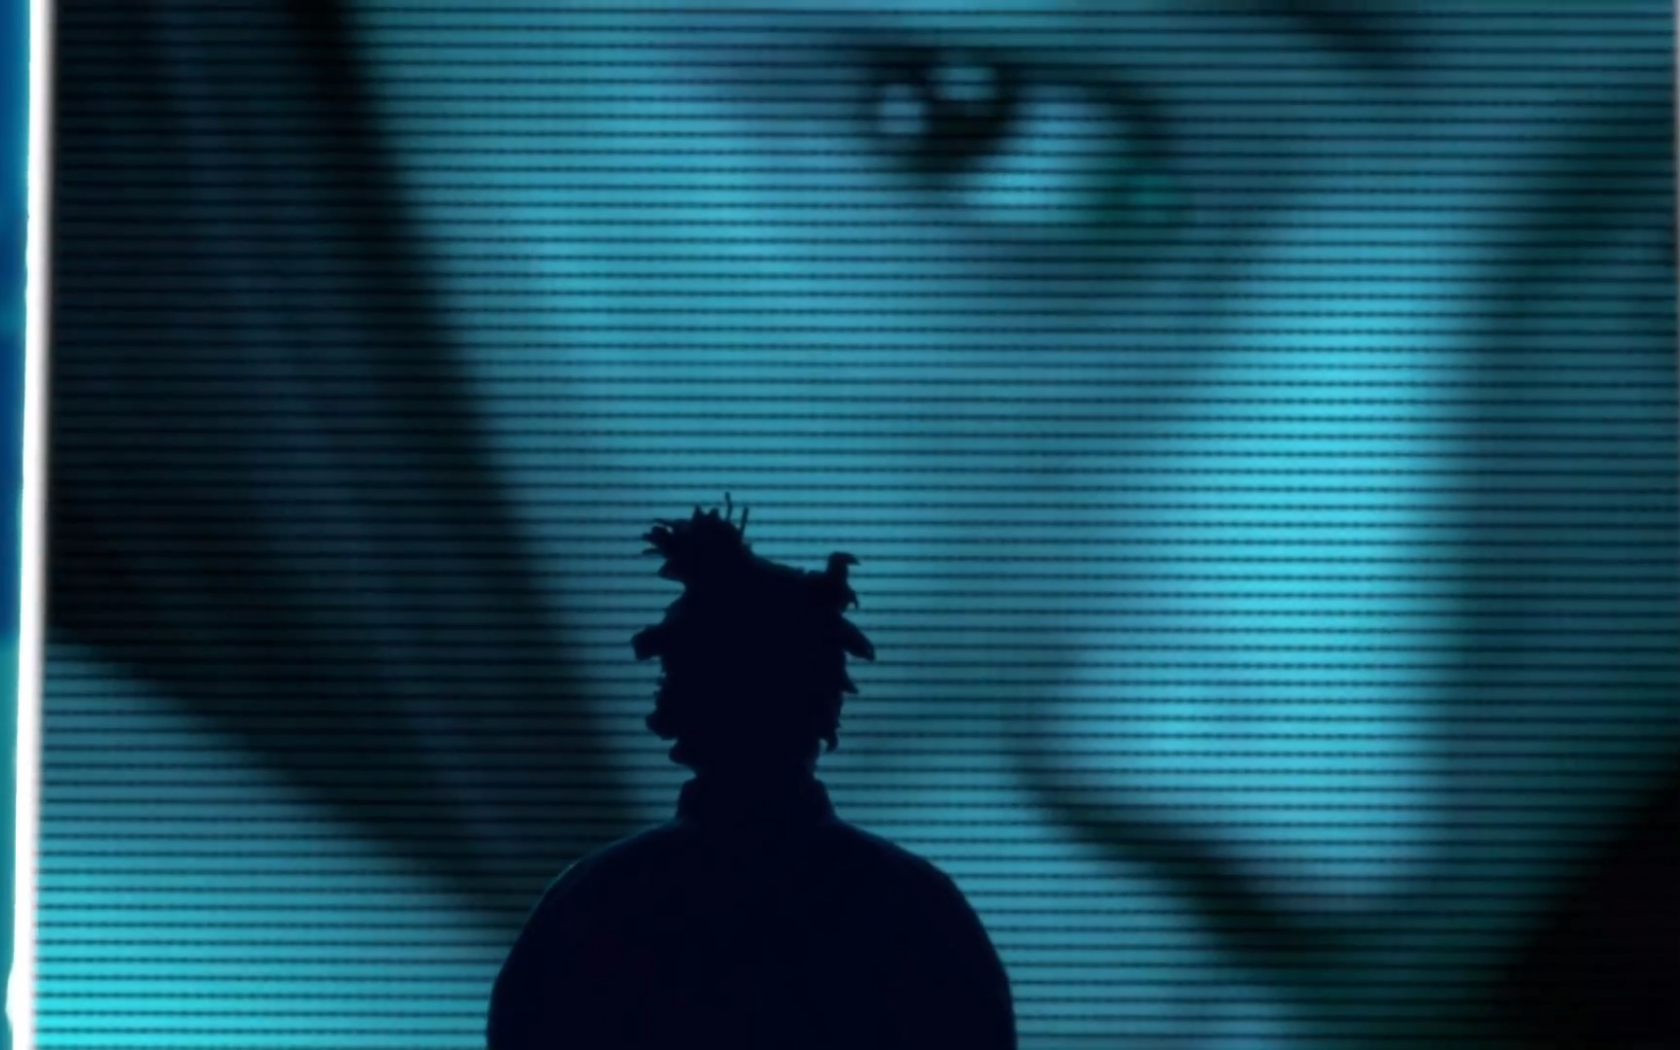 Free Download The Weeknd Silhouette On Stage Rap Wallpapers 1920x1080 For Your Desktop Mobile Tablet Explore 49 The Weeknd Desktop Wallpaper The Weeknd Wallpaper Tumblr The Weeknd Xo Wallpaper